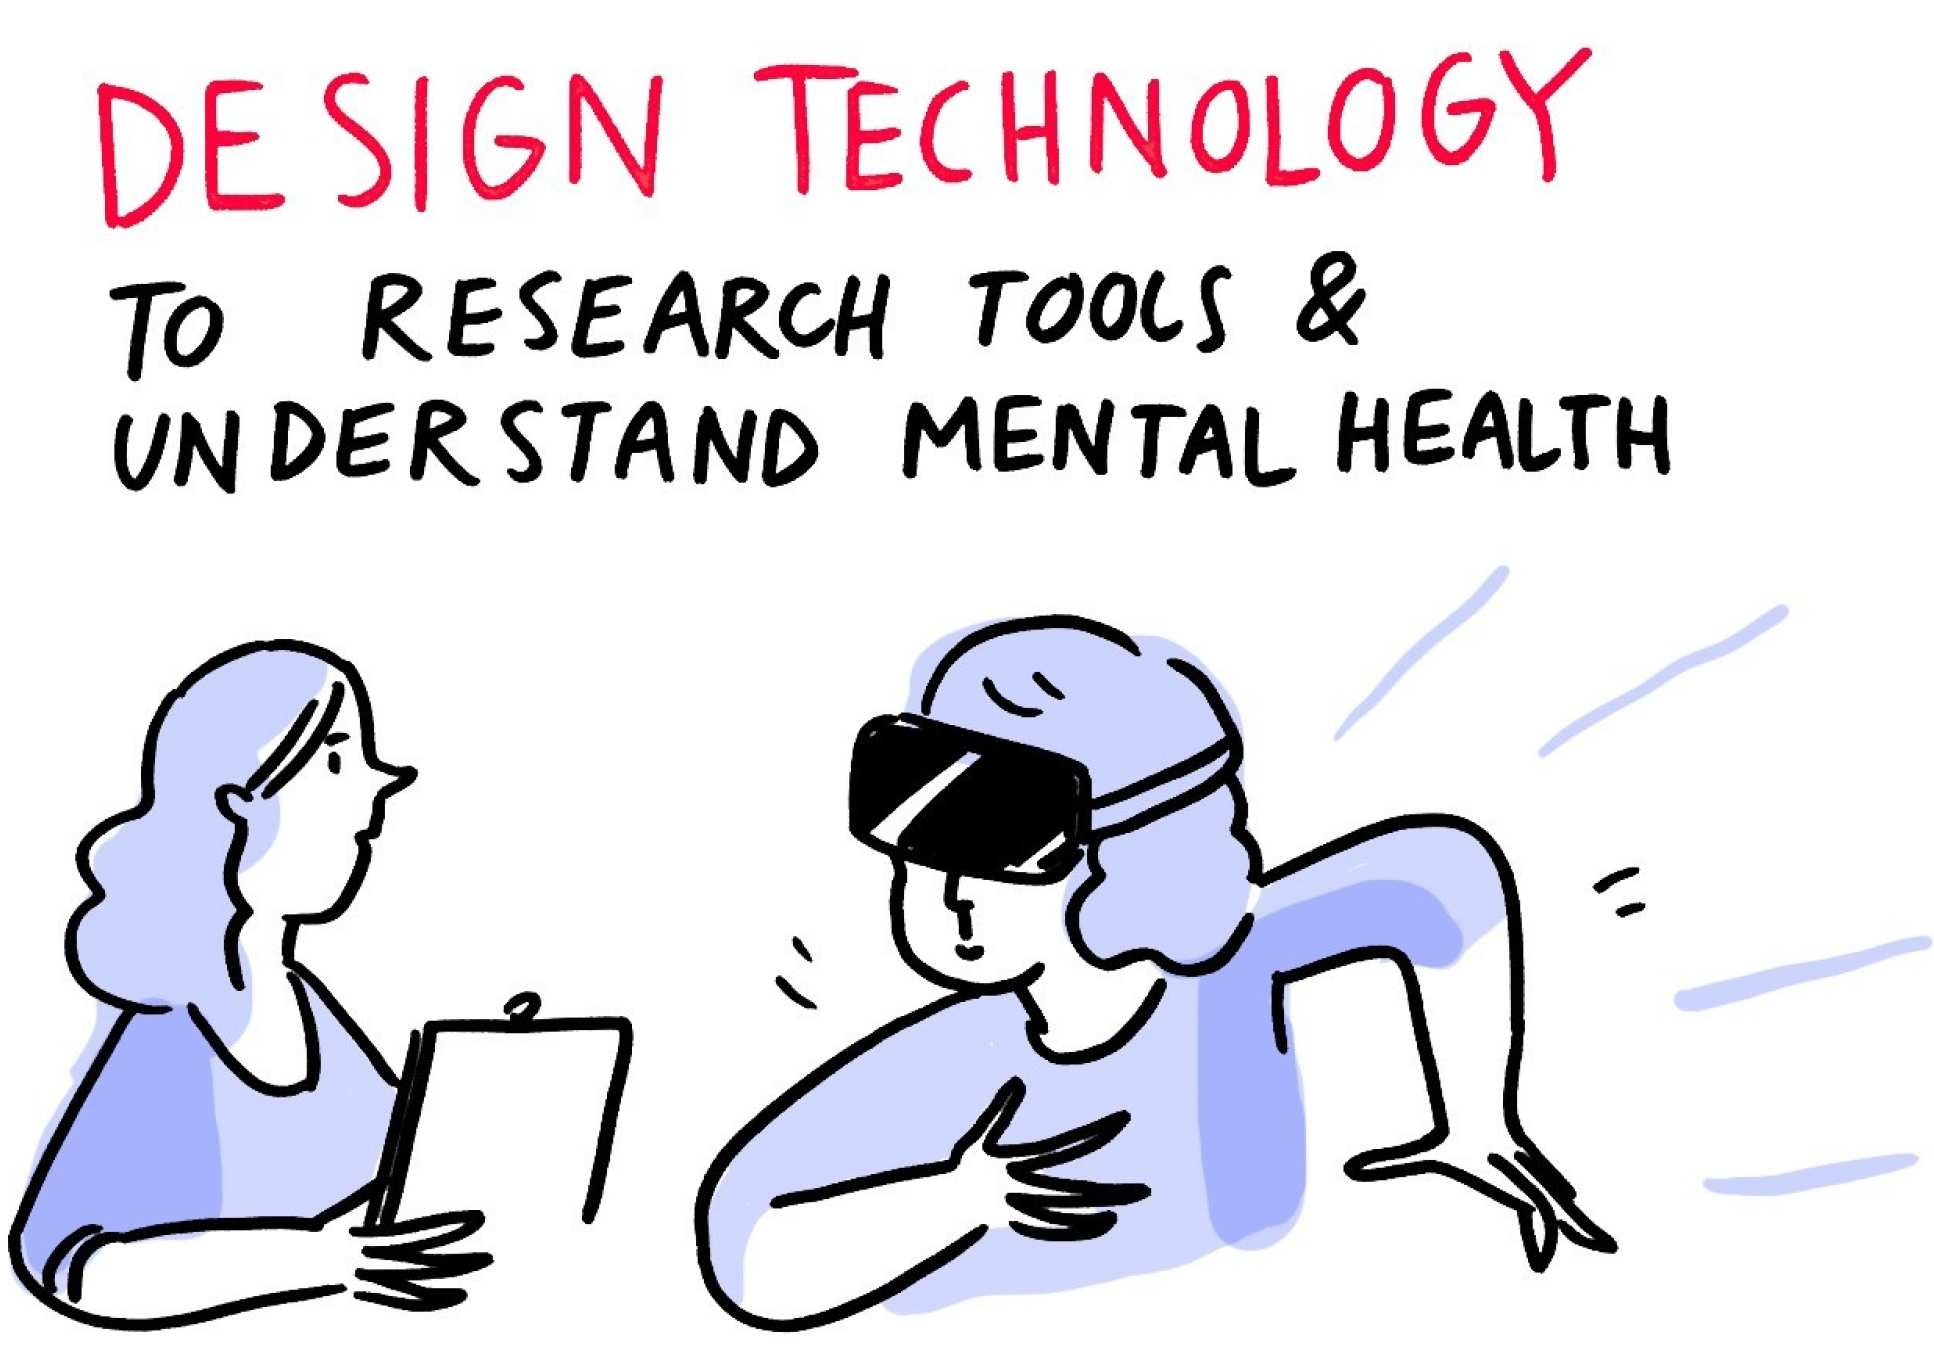 Dr Nerja Van Zalk's talk on cognitive needs as illustrated by Josie Ford (detail). See full image.